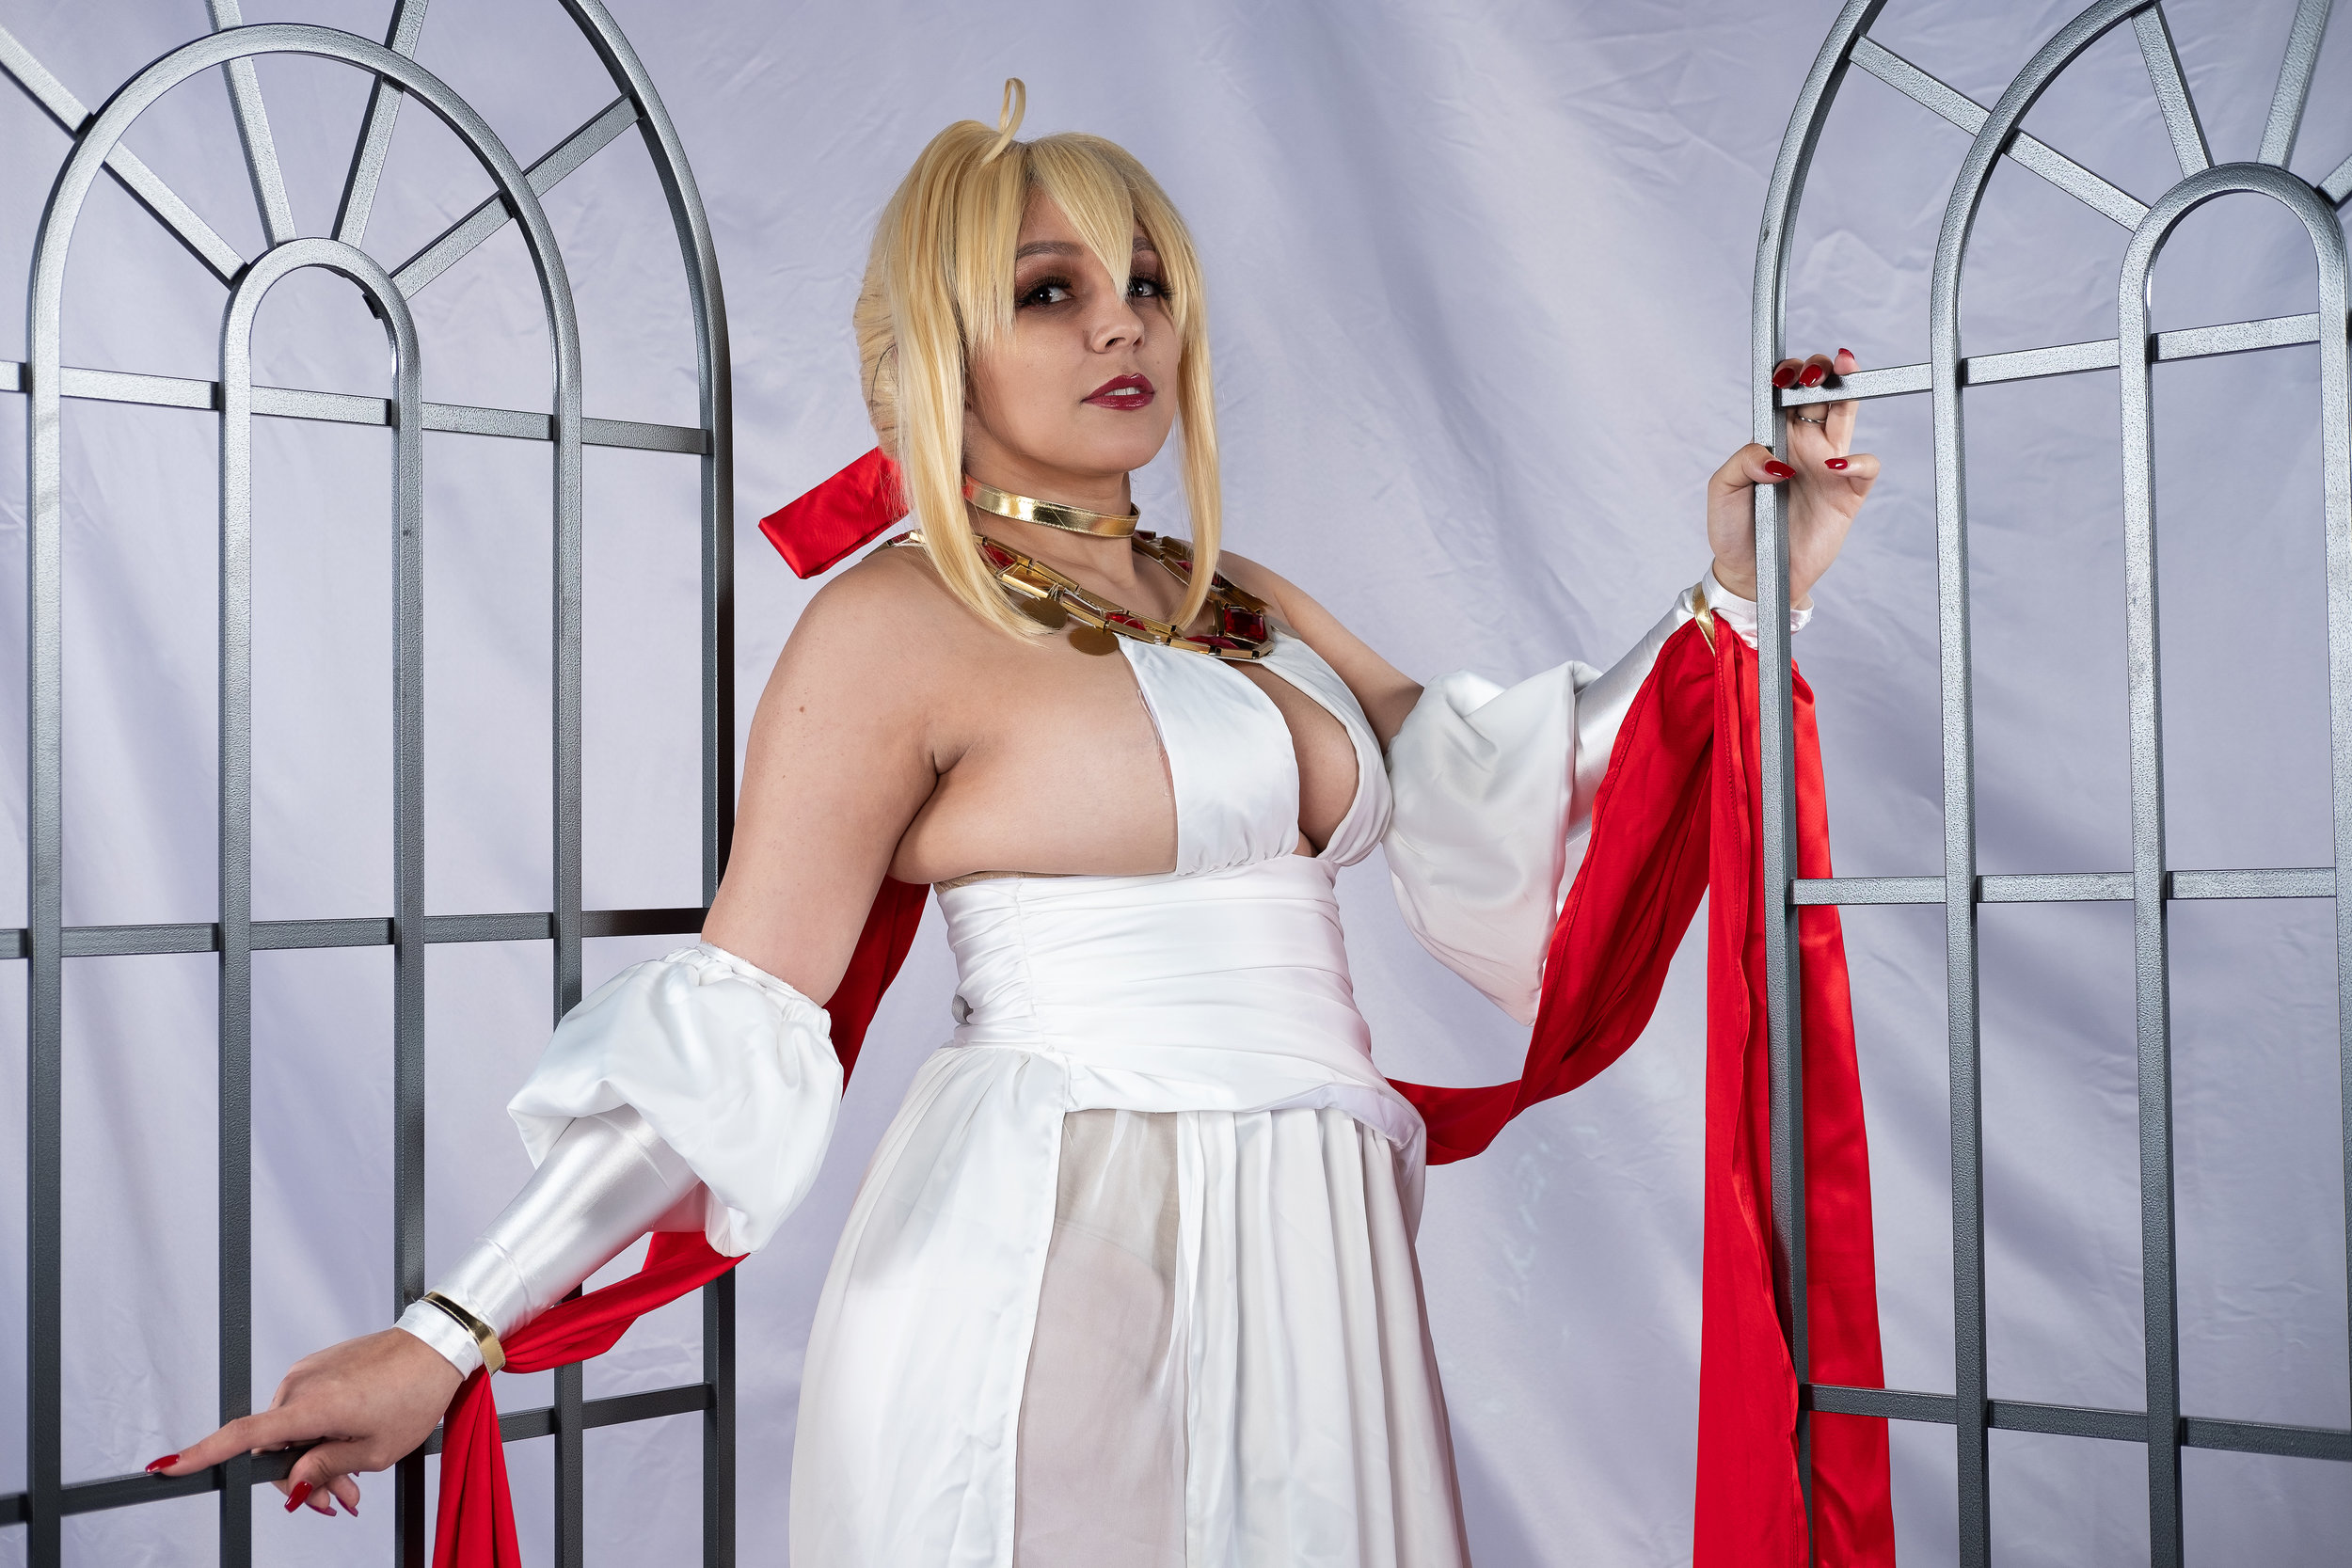 Mermaid Child cosplaying as Nero Claudius from Fate/Grand Order